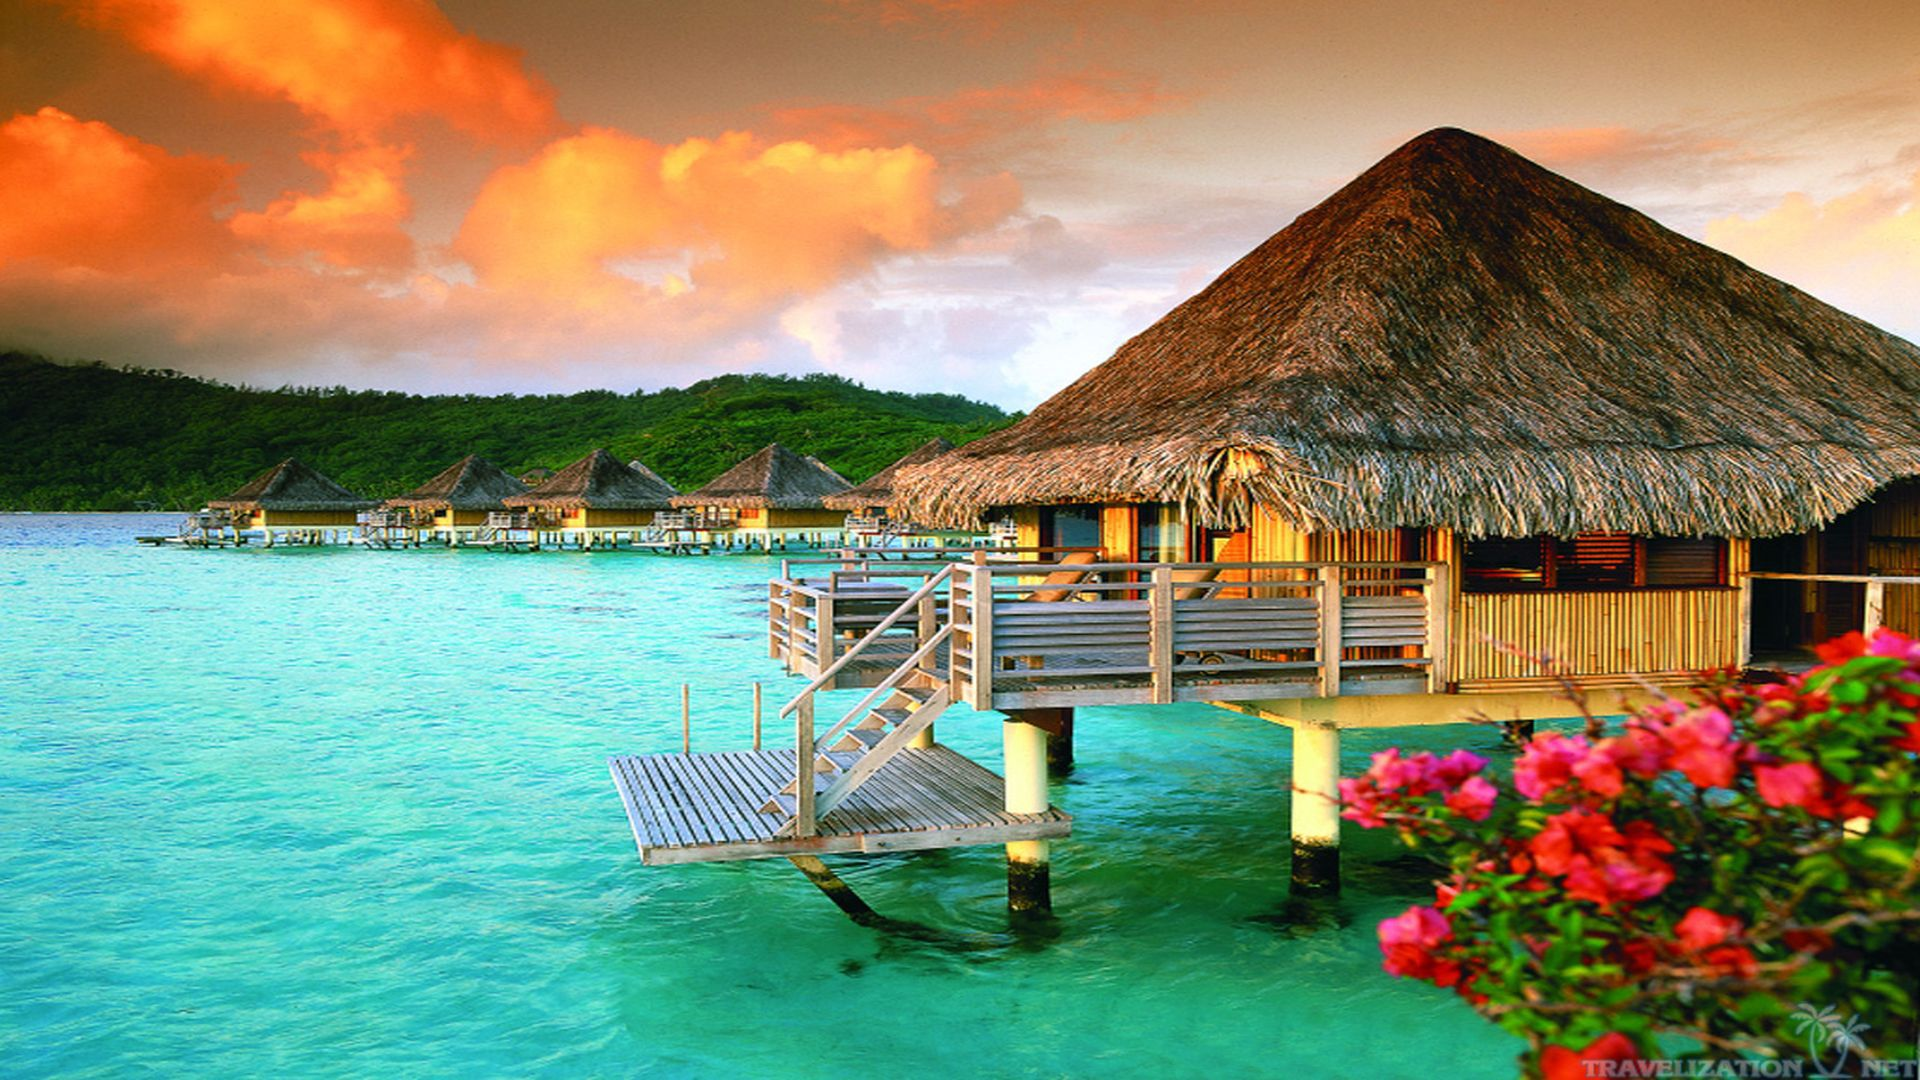 Download Bora Bora Island Wallpaper Widescreen m97 1920x1080 px 356 1920x1080